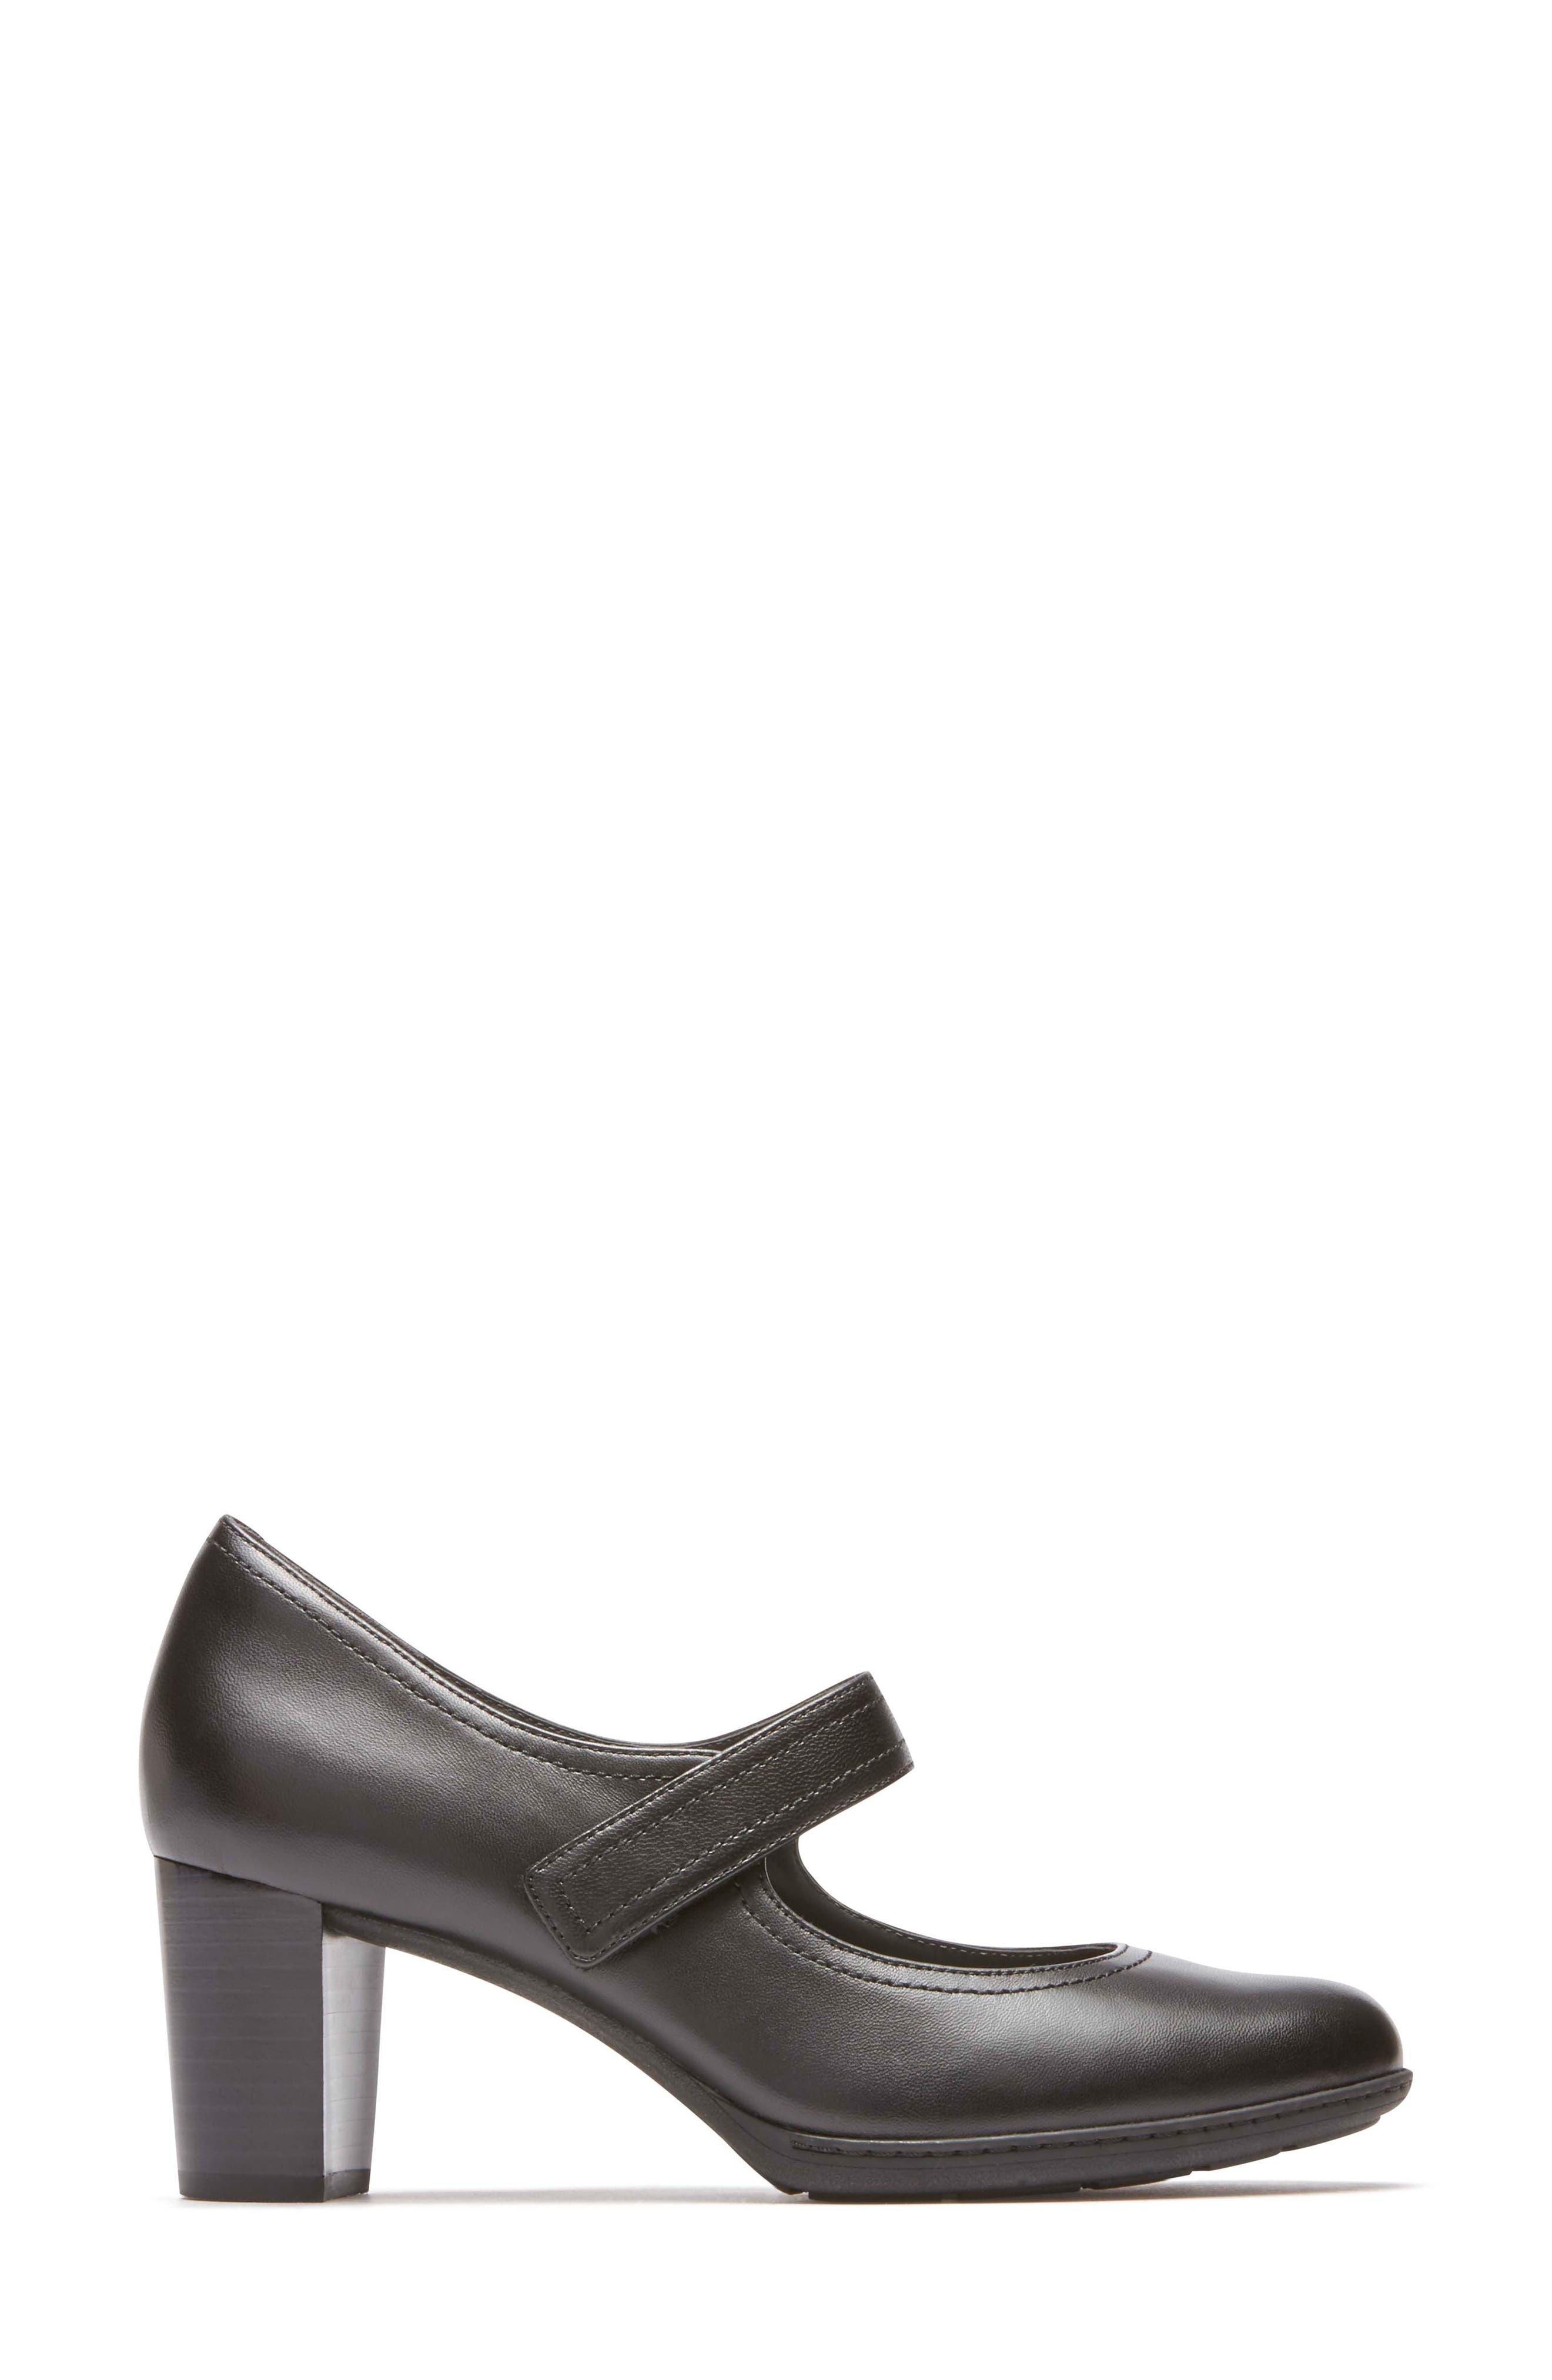 Alternate Image 3  - Rockport Chaya Mary Jane Pump (Women)